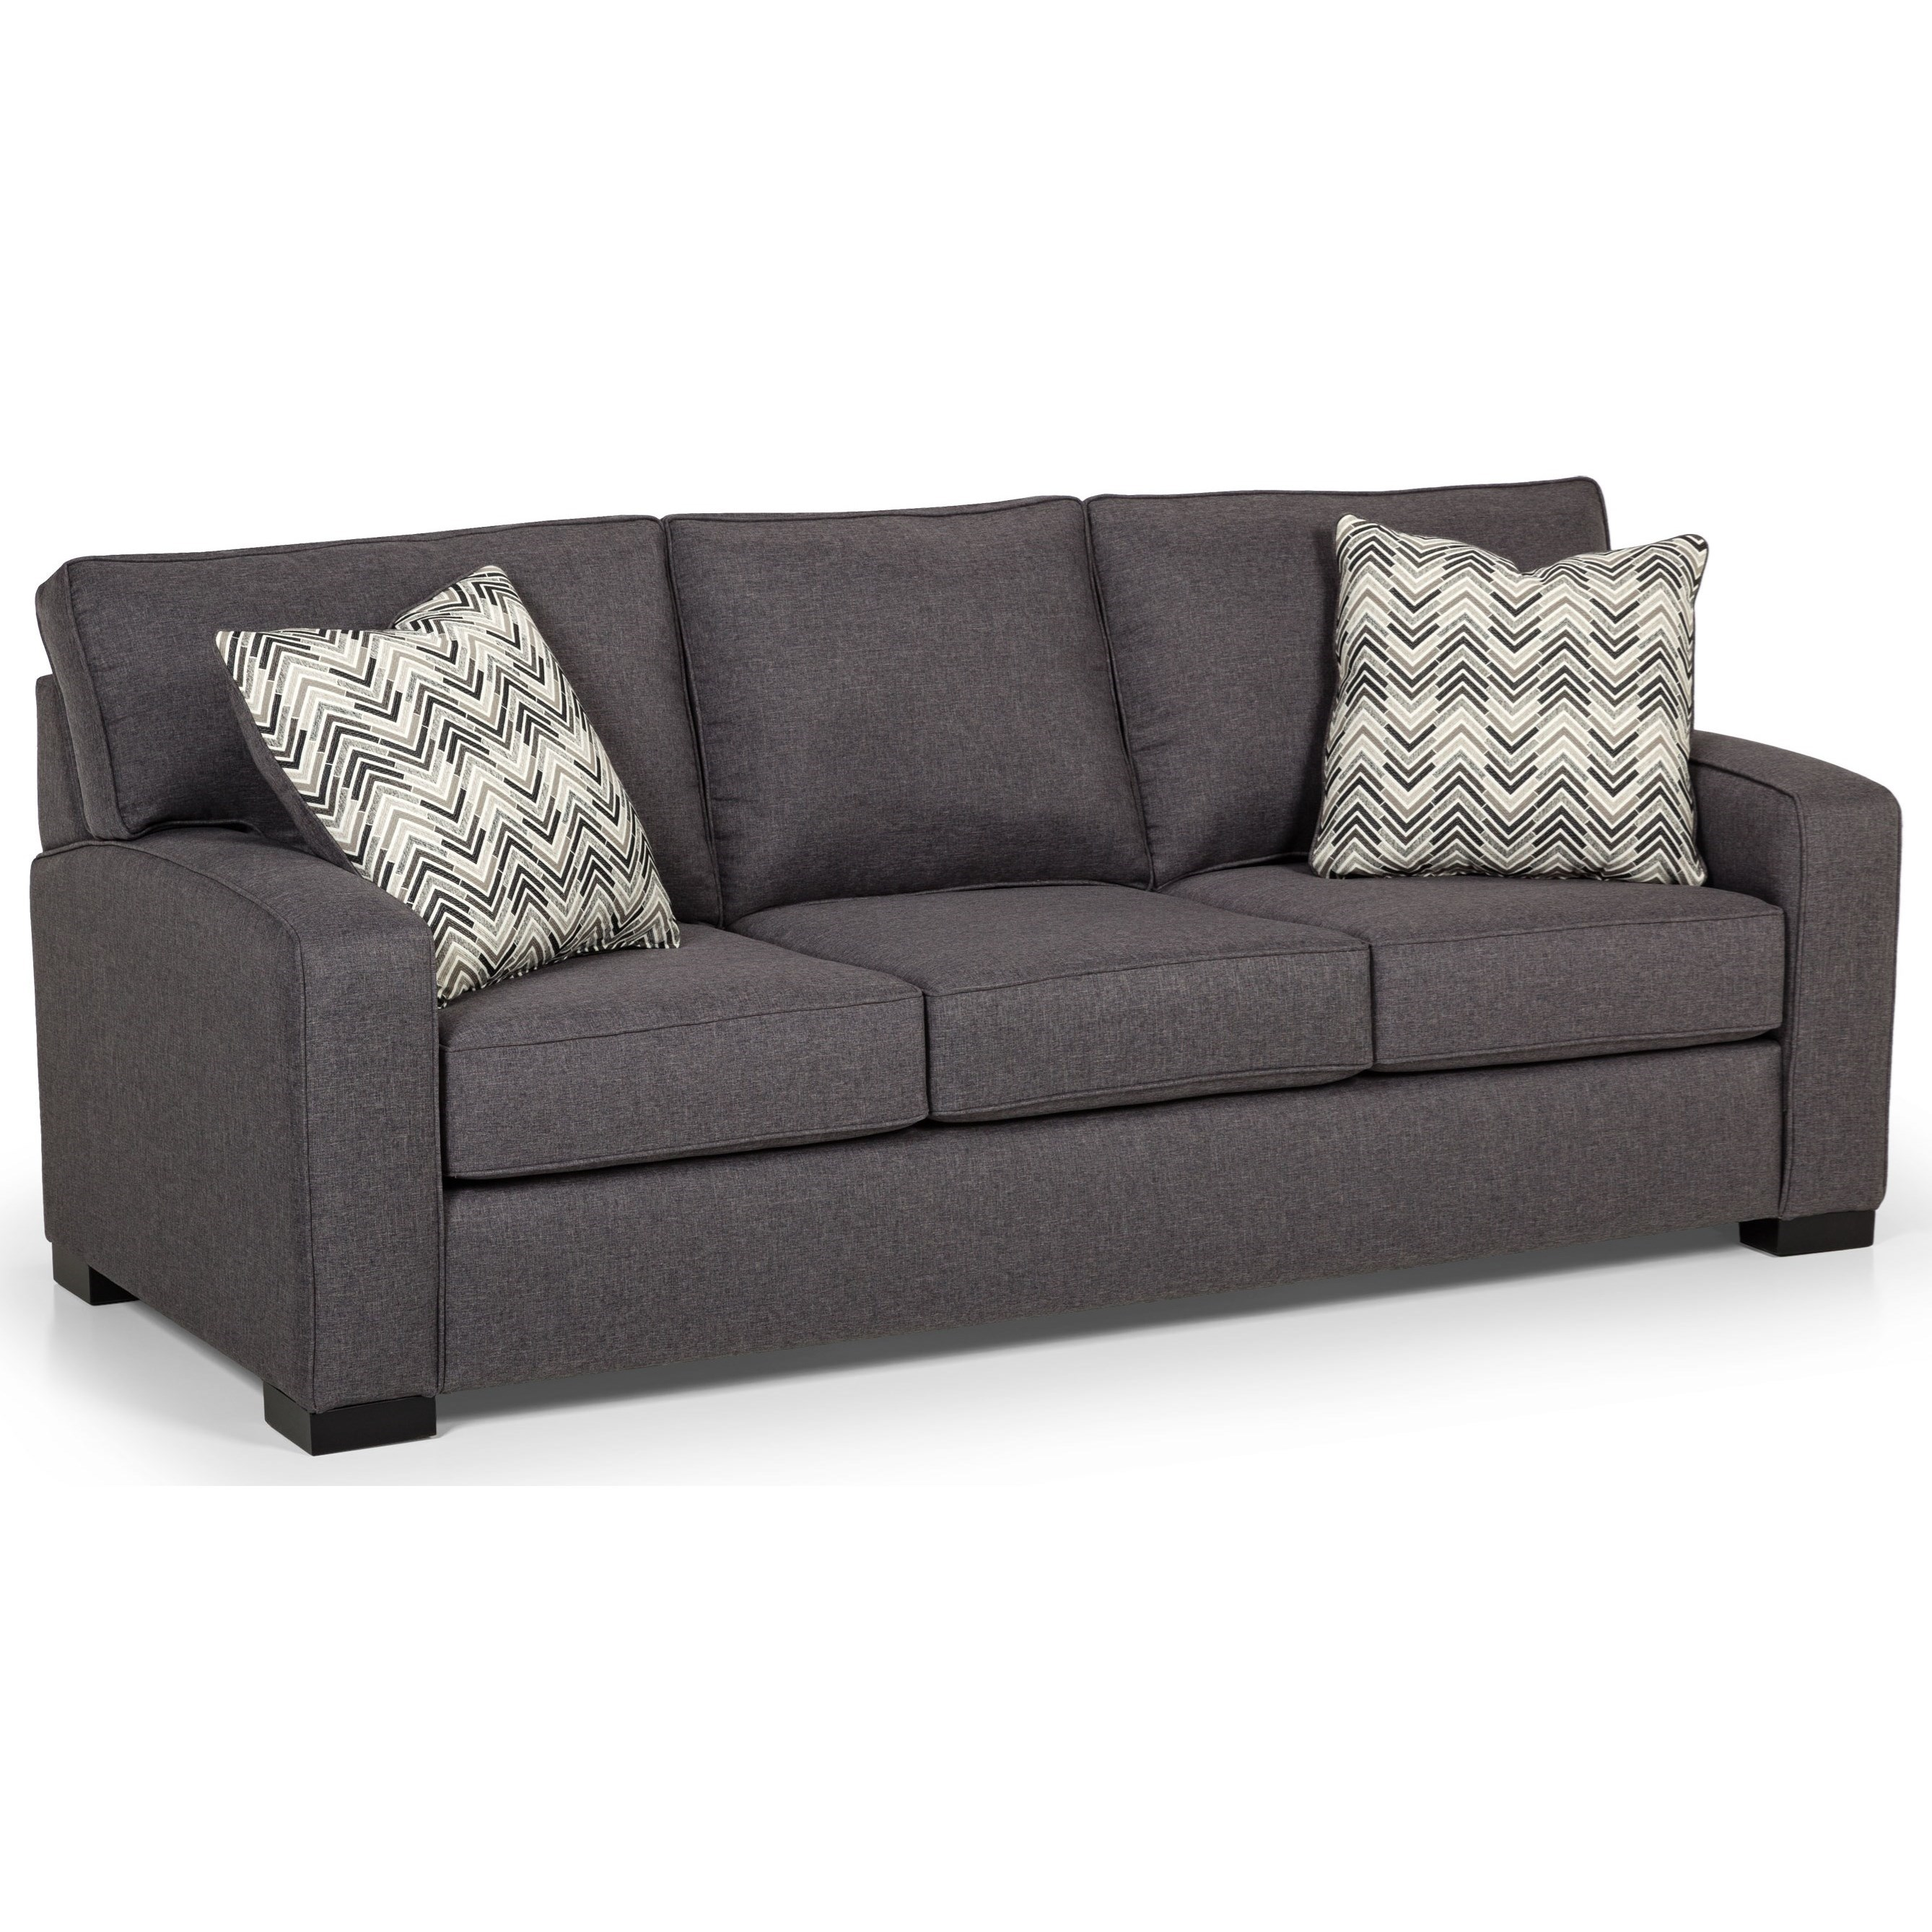 375 Queen Basic Sleeper Sofa by Stanton at Wilson's Furniture